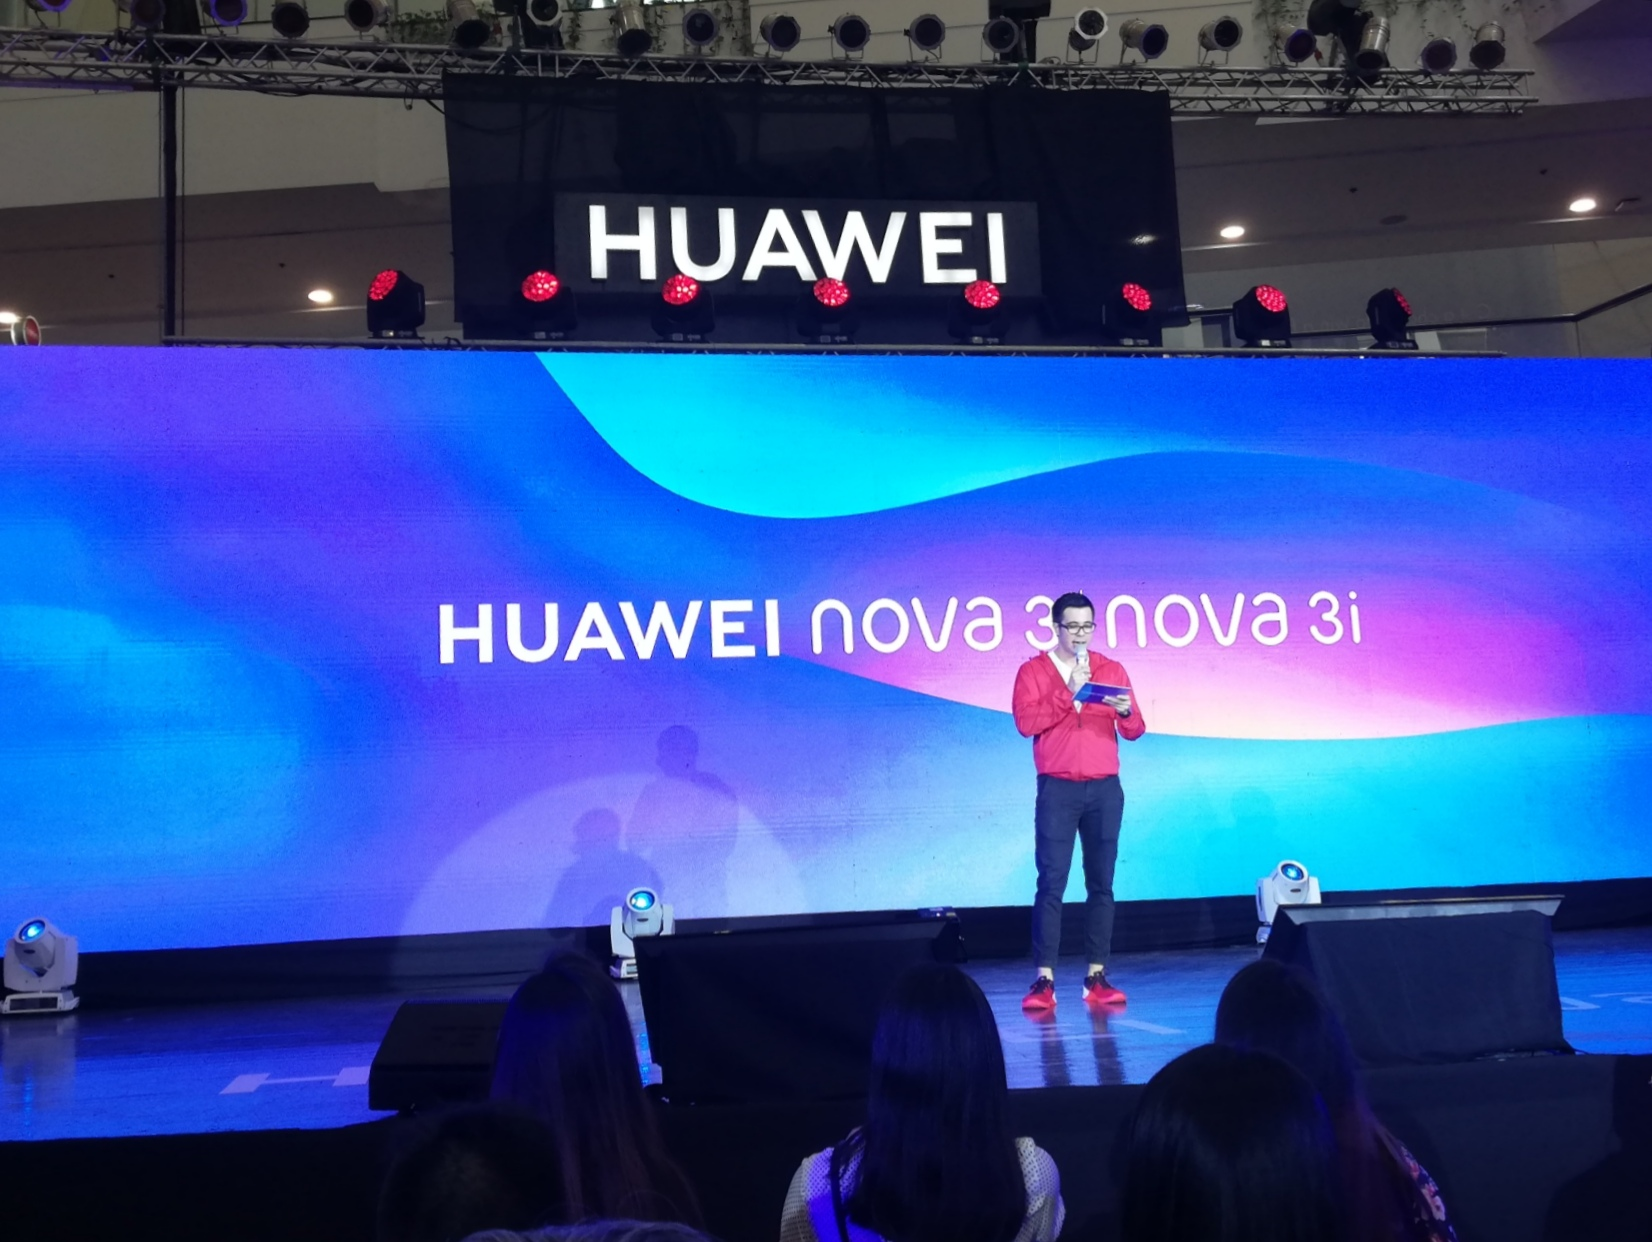 Huawei Nova 3 and 3i finally launches in the Philippines